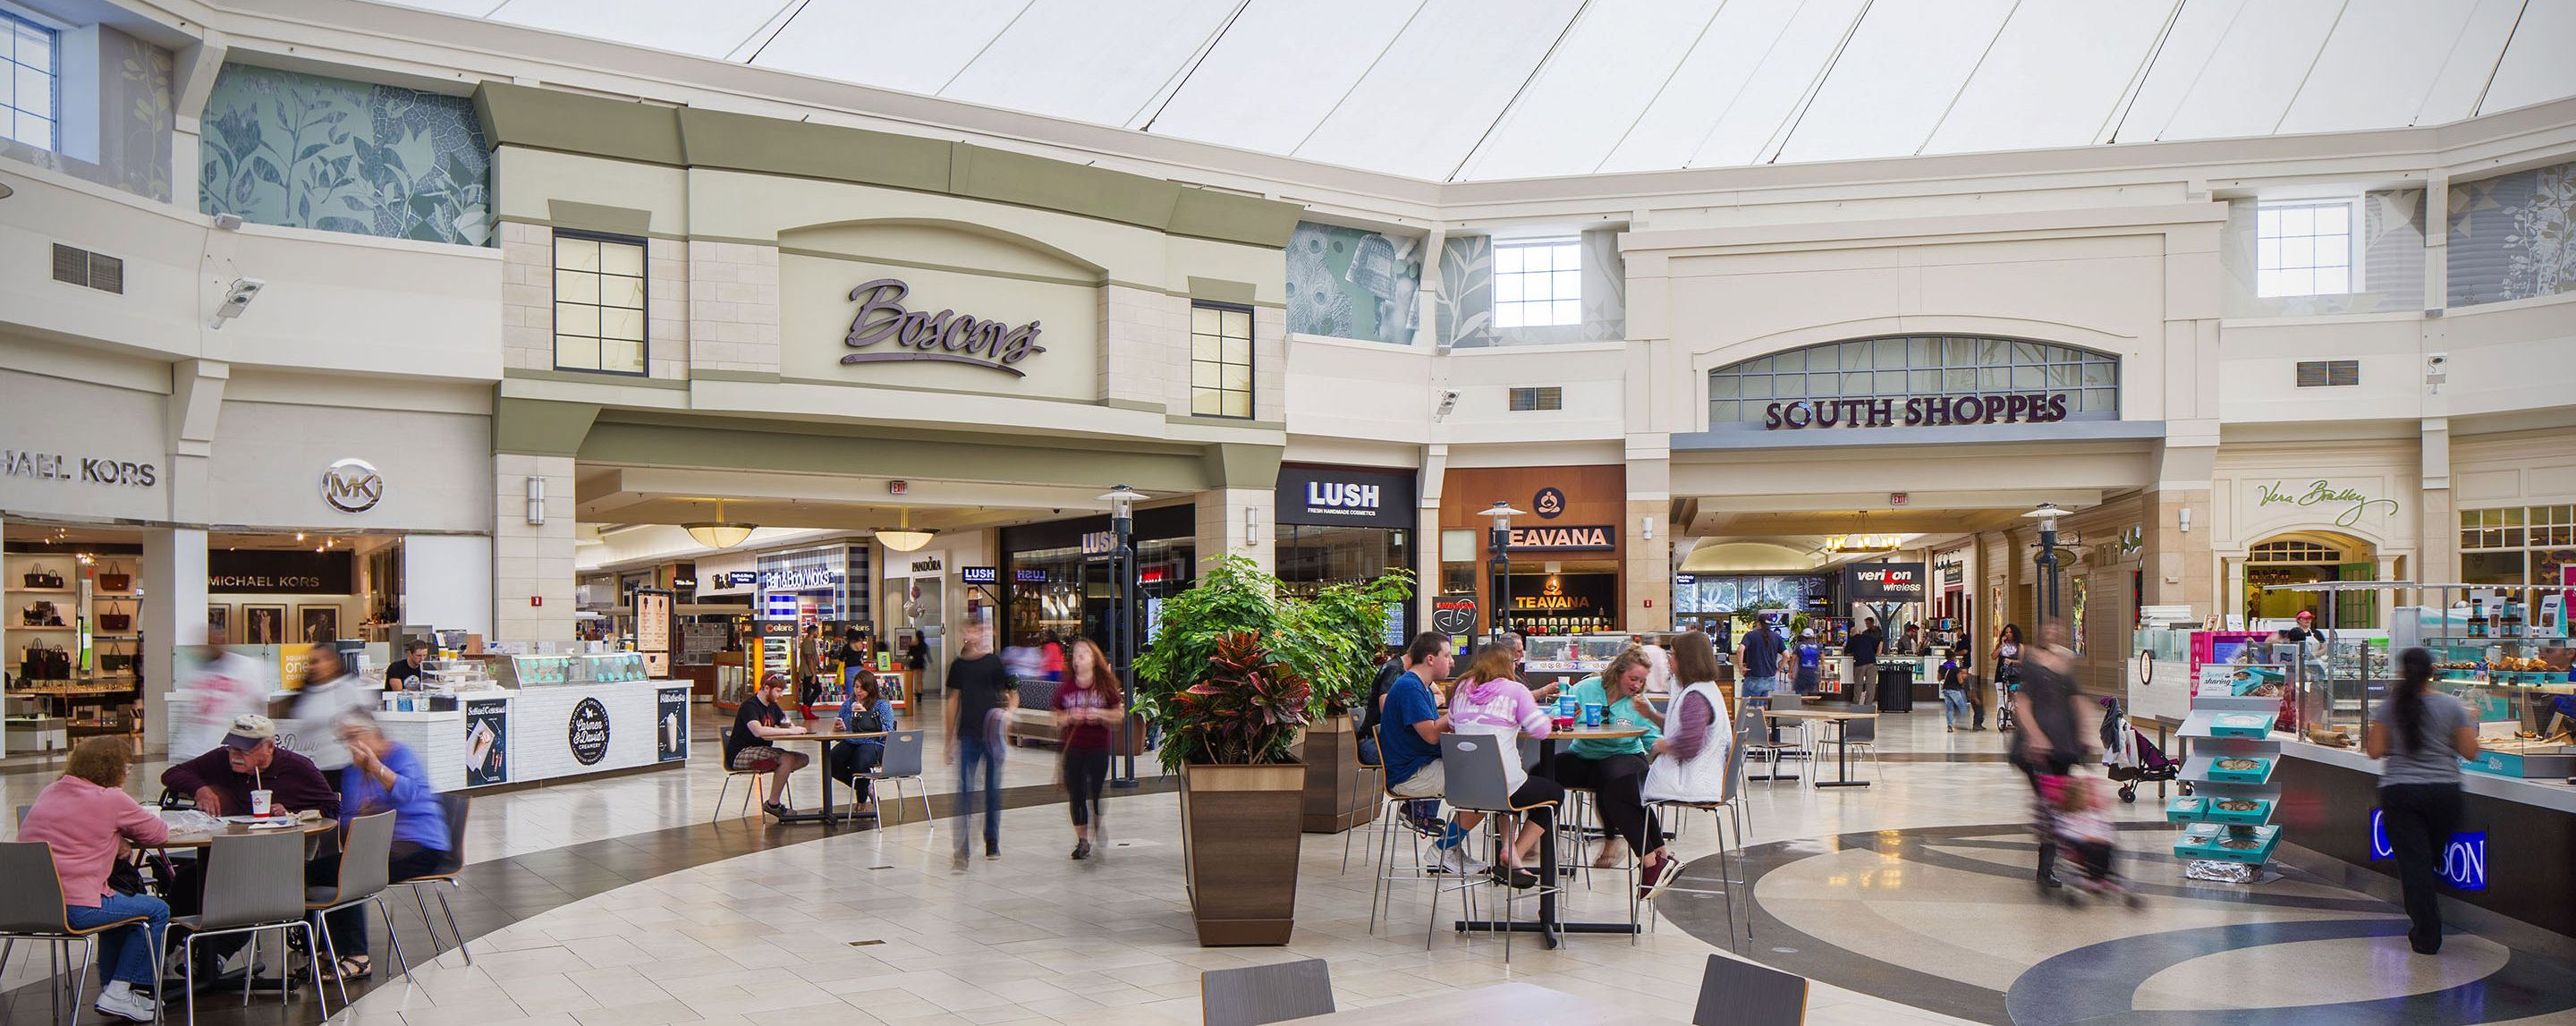 People walk around and sit in an open area of a shopping mall with stores like Lush, Pandora, Verizon and Michael Kors nearby